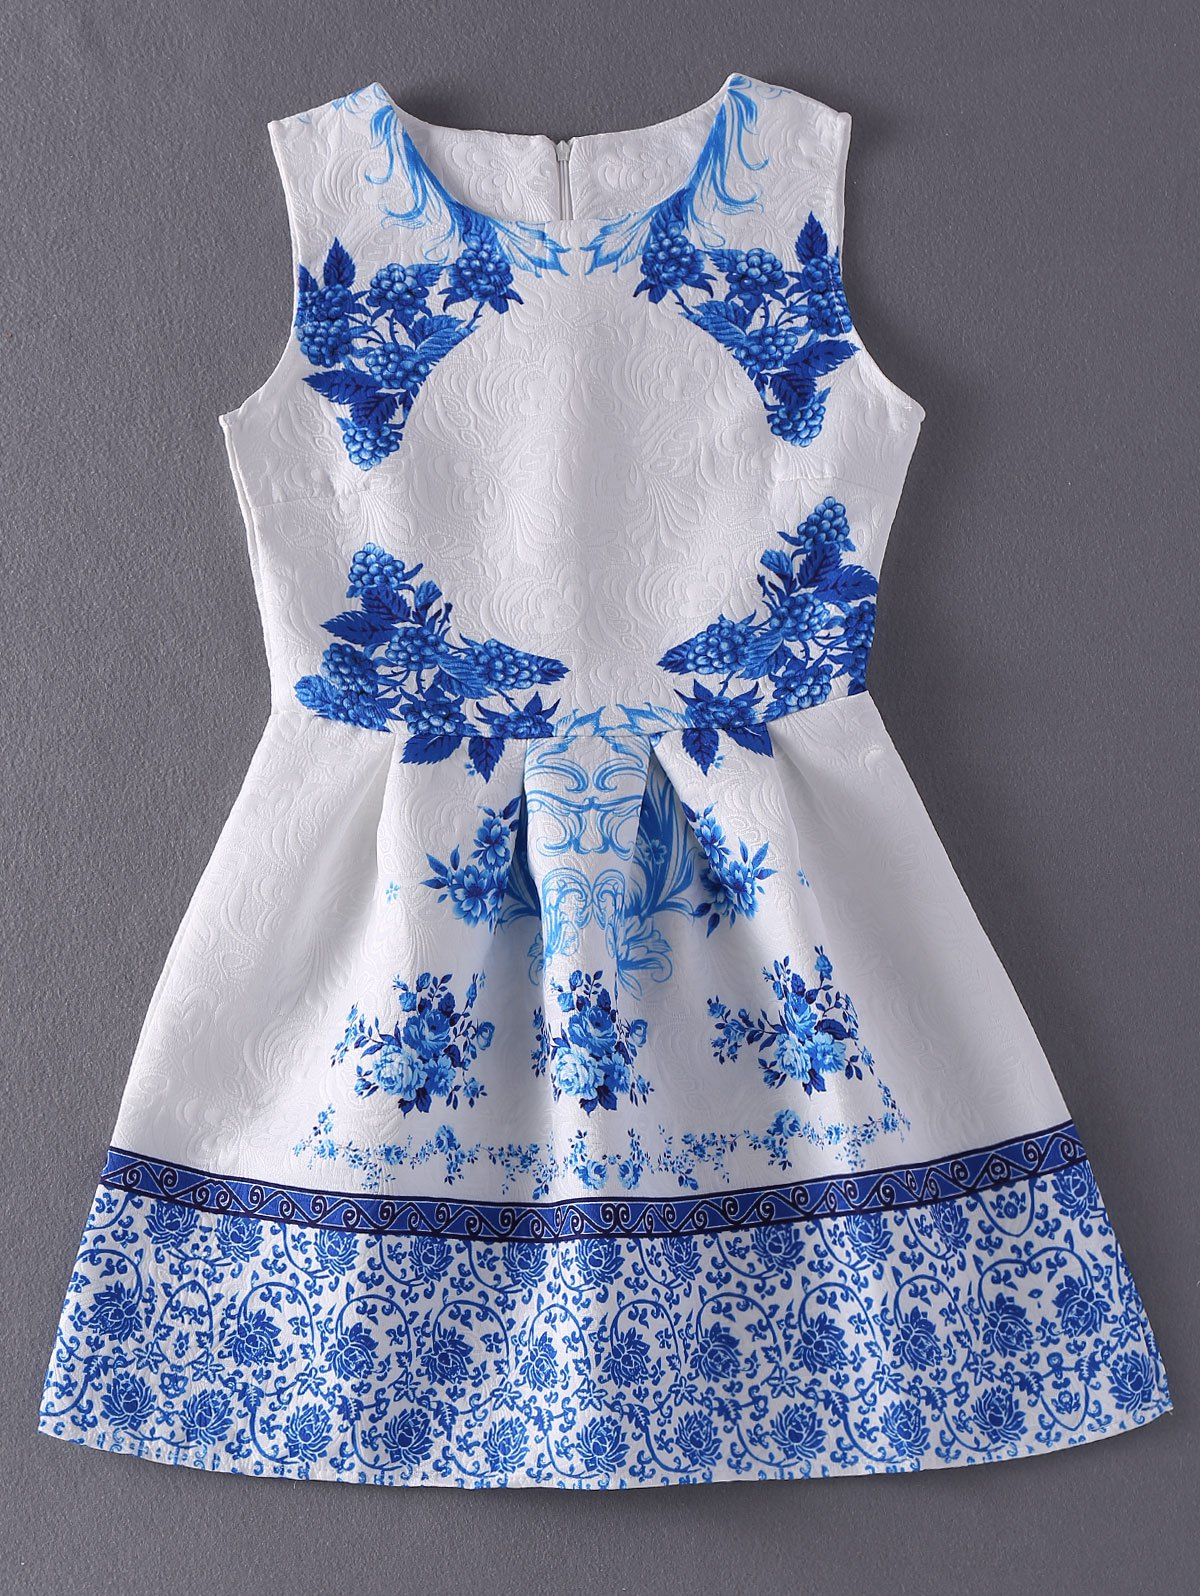 Vintage Style Women's Jewel Neck Sleeveless Floral Print Jacquard Dress